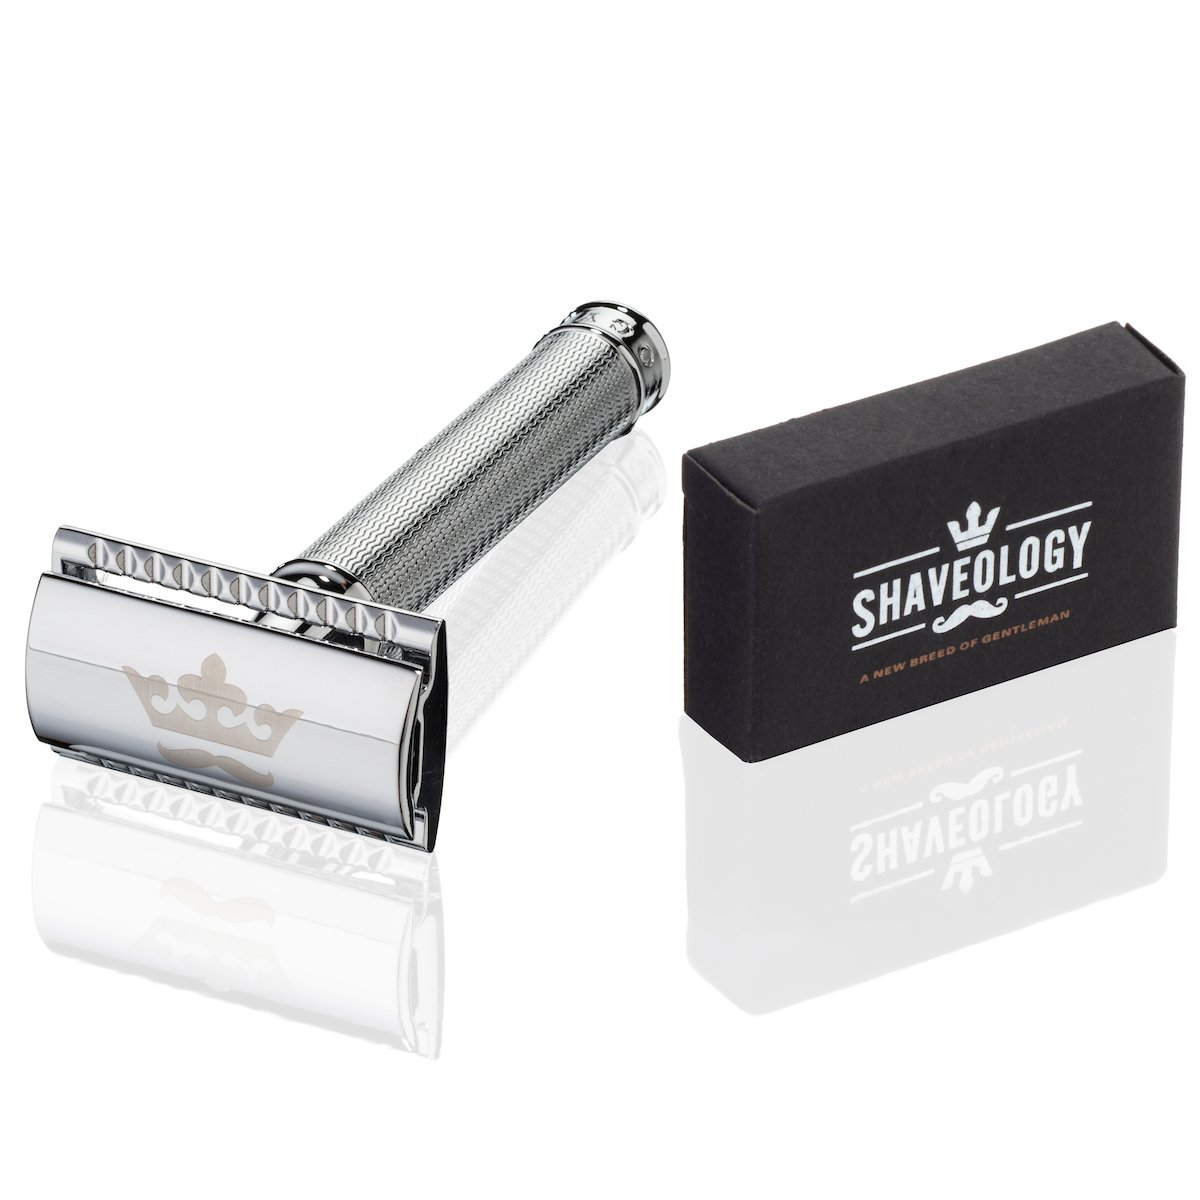 Shaving Razor, Luxury Razor, Double-Edge Razor, Safety Razor